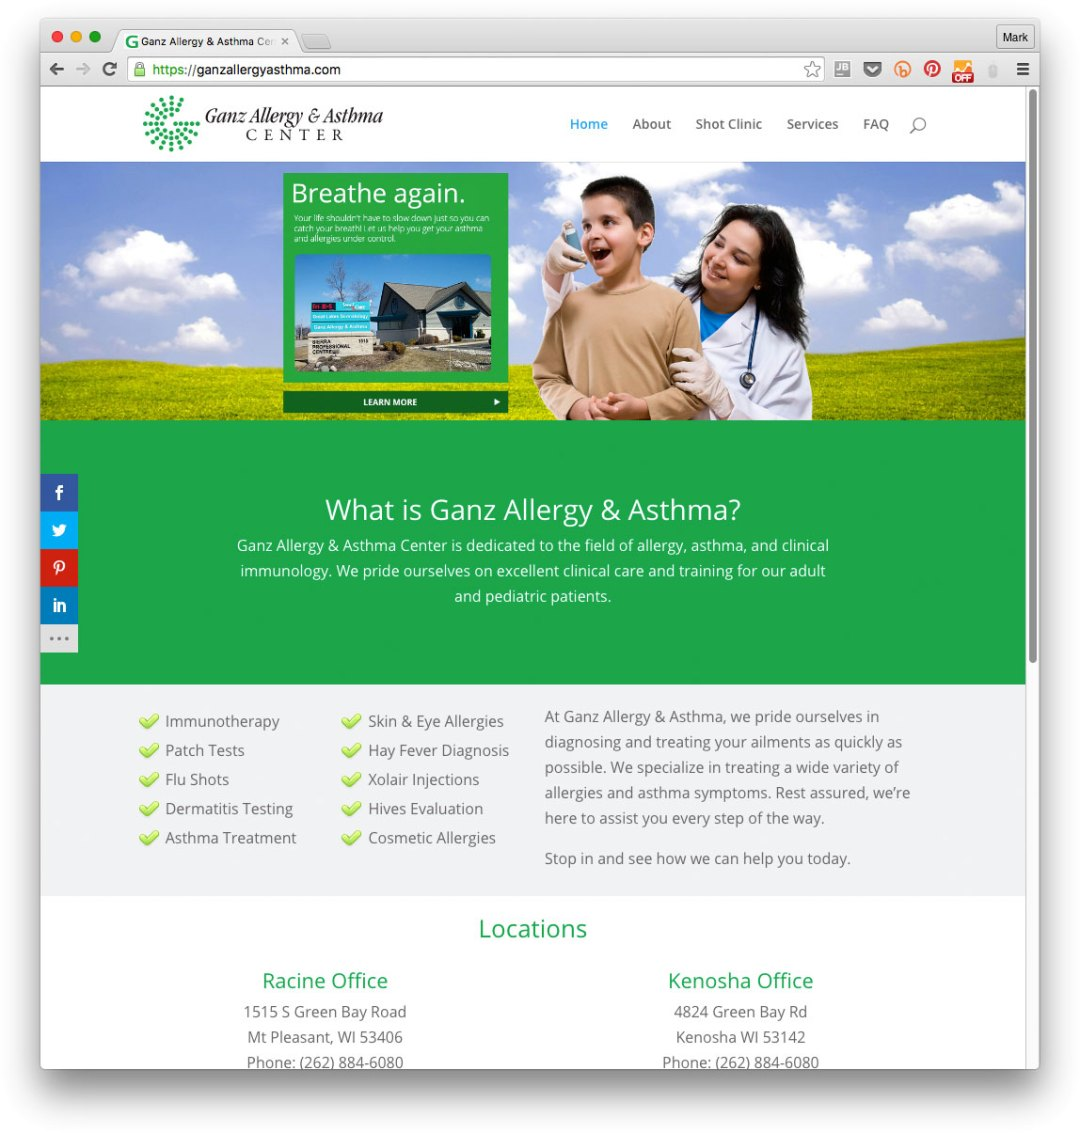 Website example: Ganz Allergy & Asthma Center